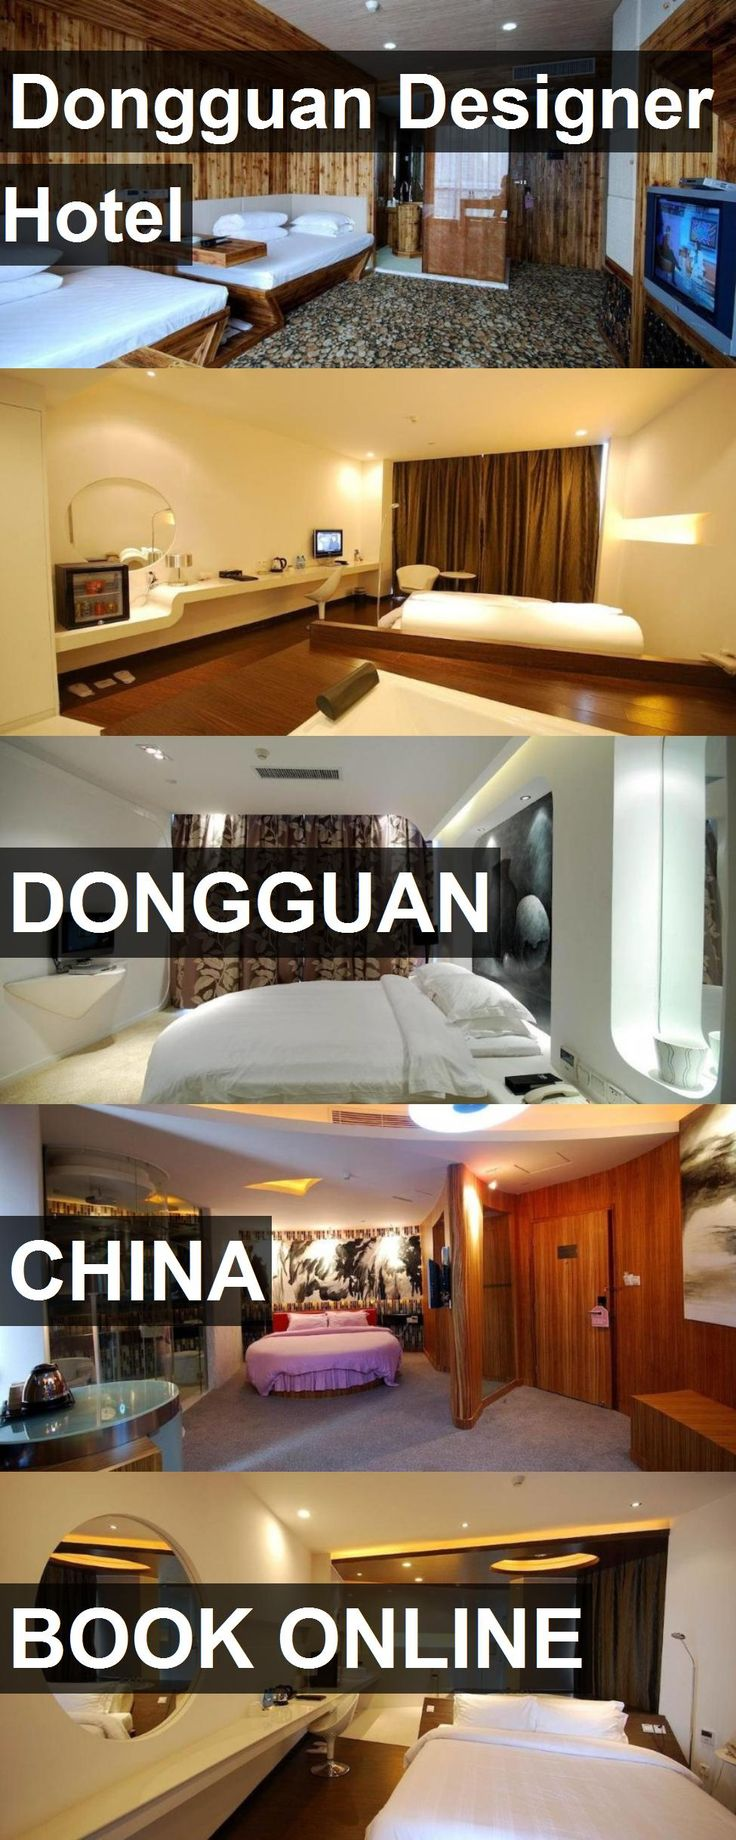 Hotel Dongguan Designer Hotel in Dongguan, China. For more information, photos, reviews and best prices please follow the link. #China #Dongguan #DongguanDesignerHotel #hotel #travel #vacation